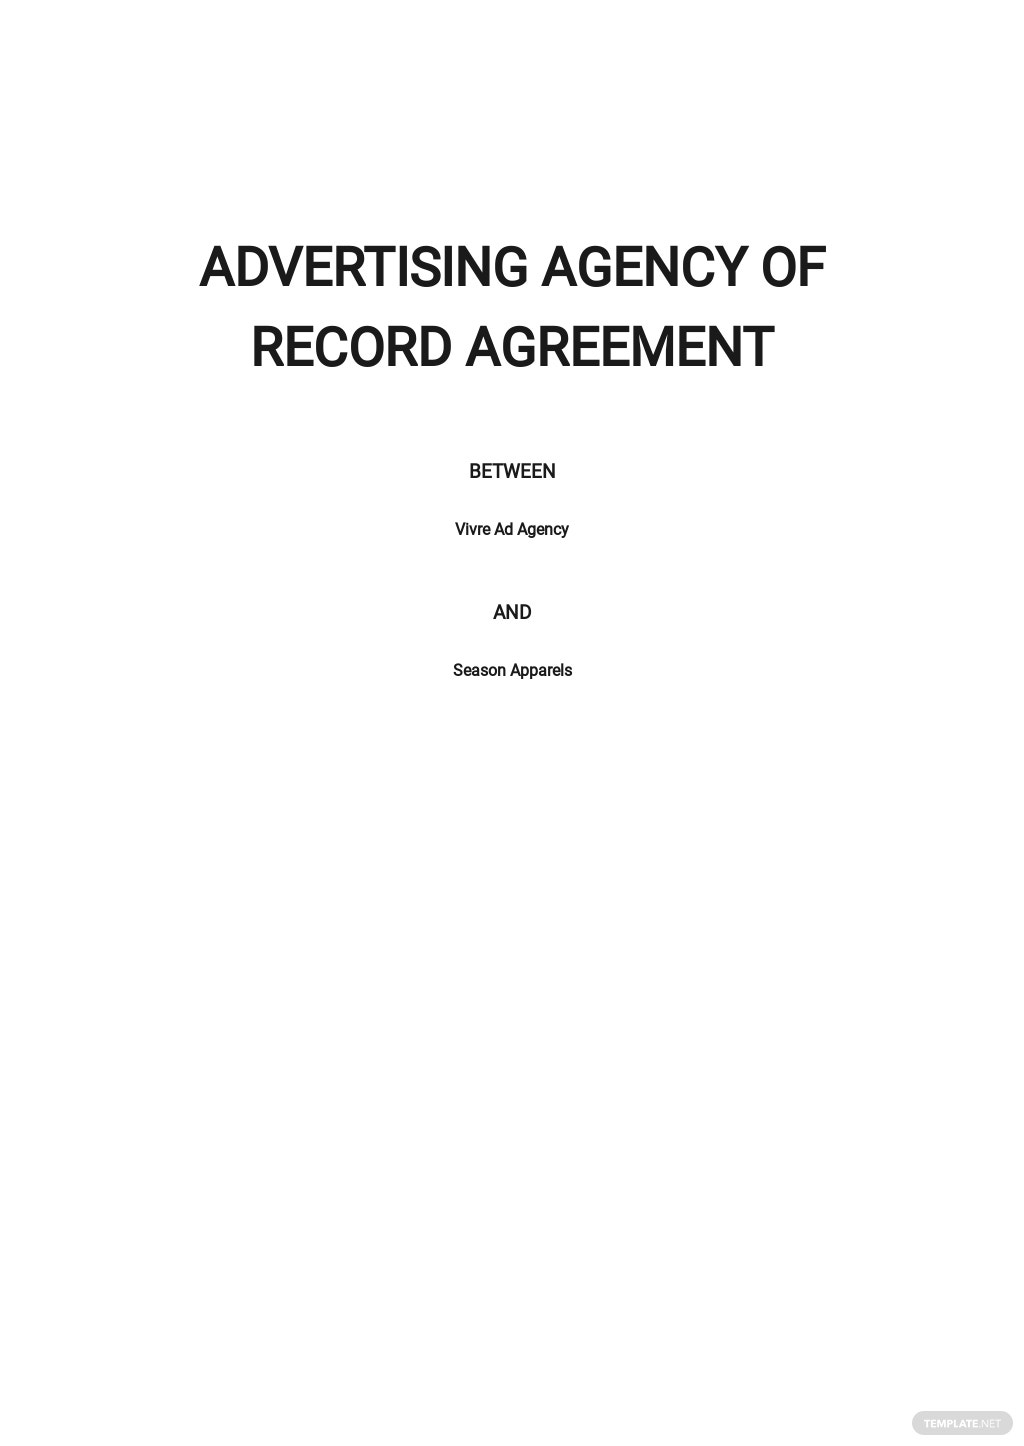 Advertising Agency of Record Agreement Template